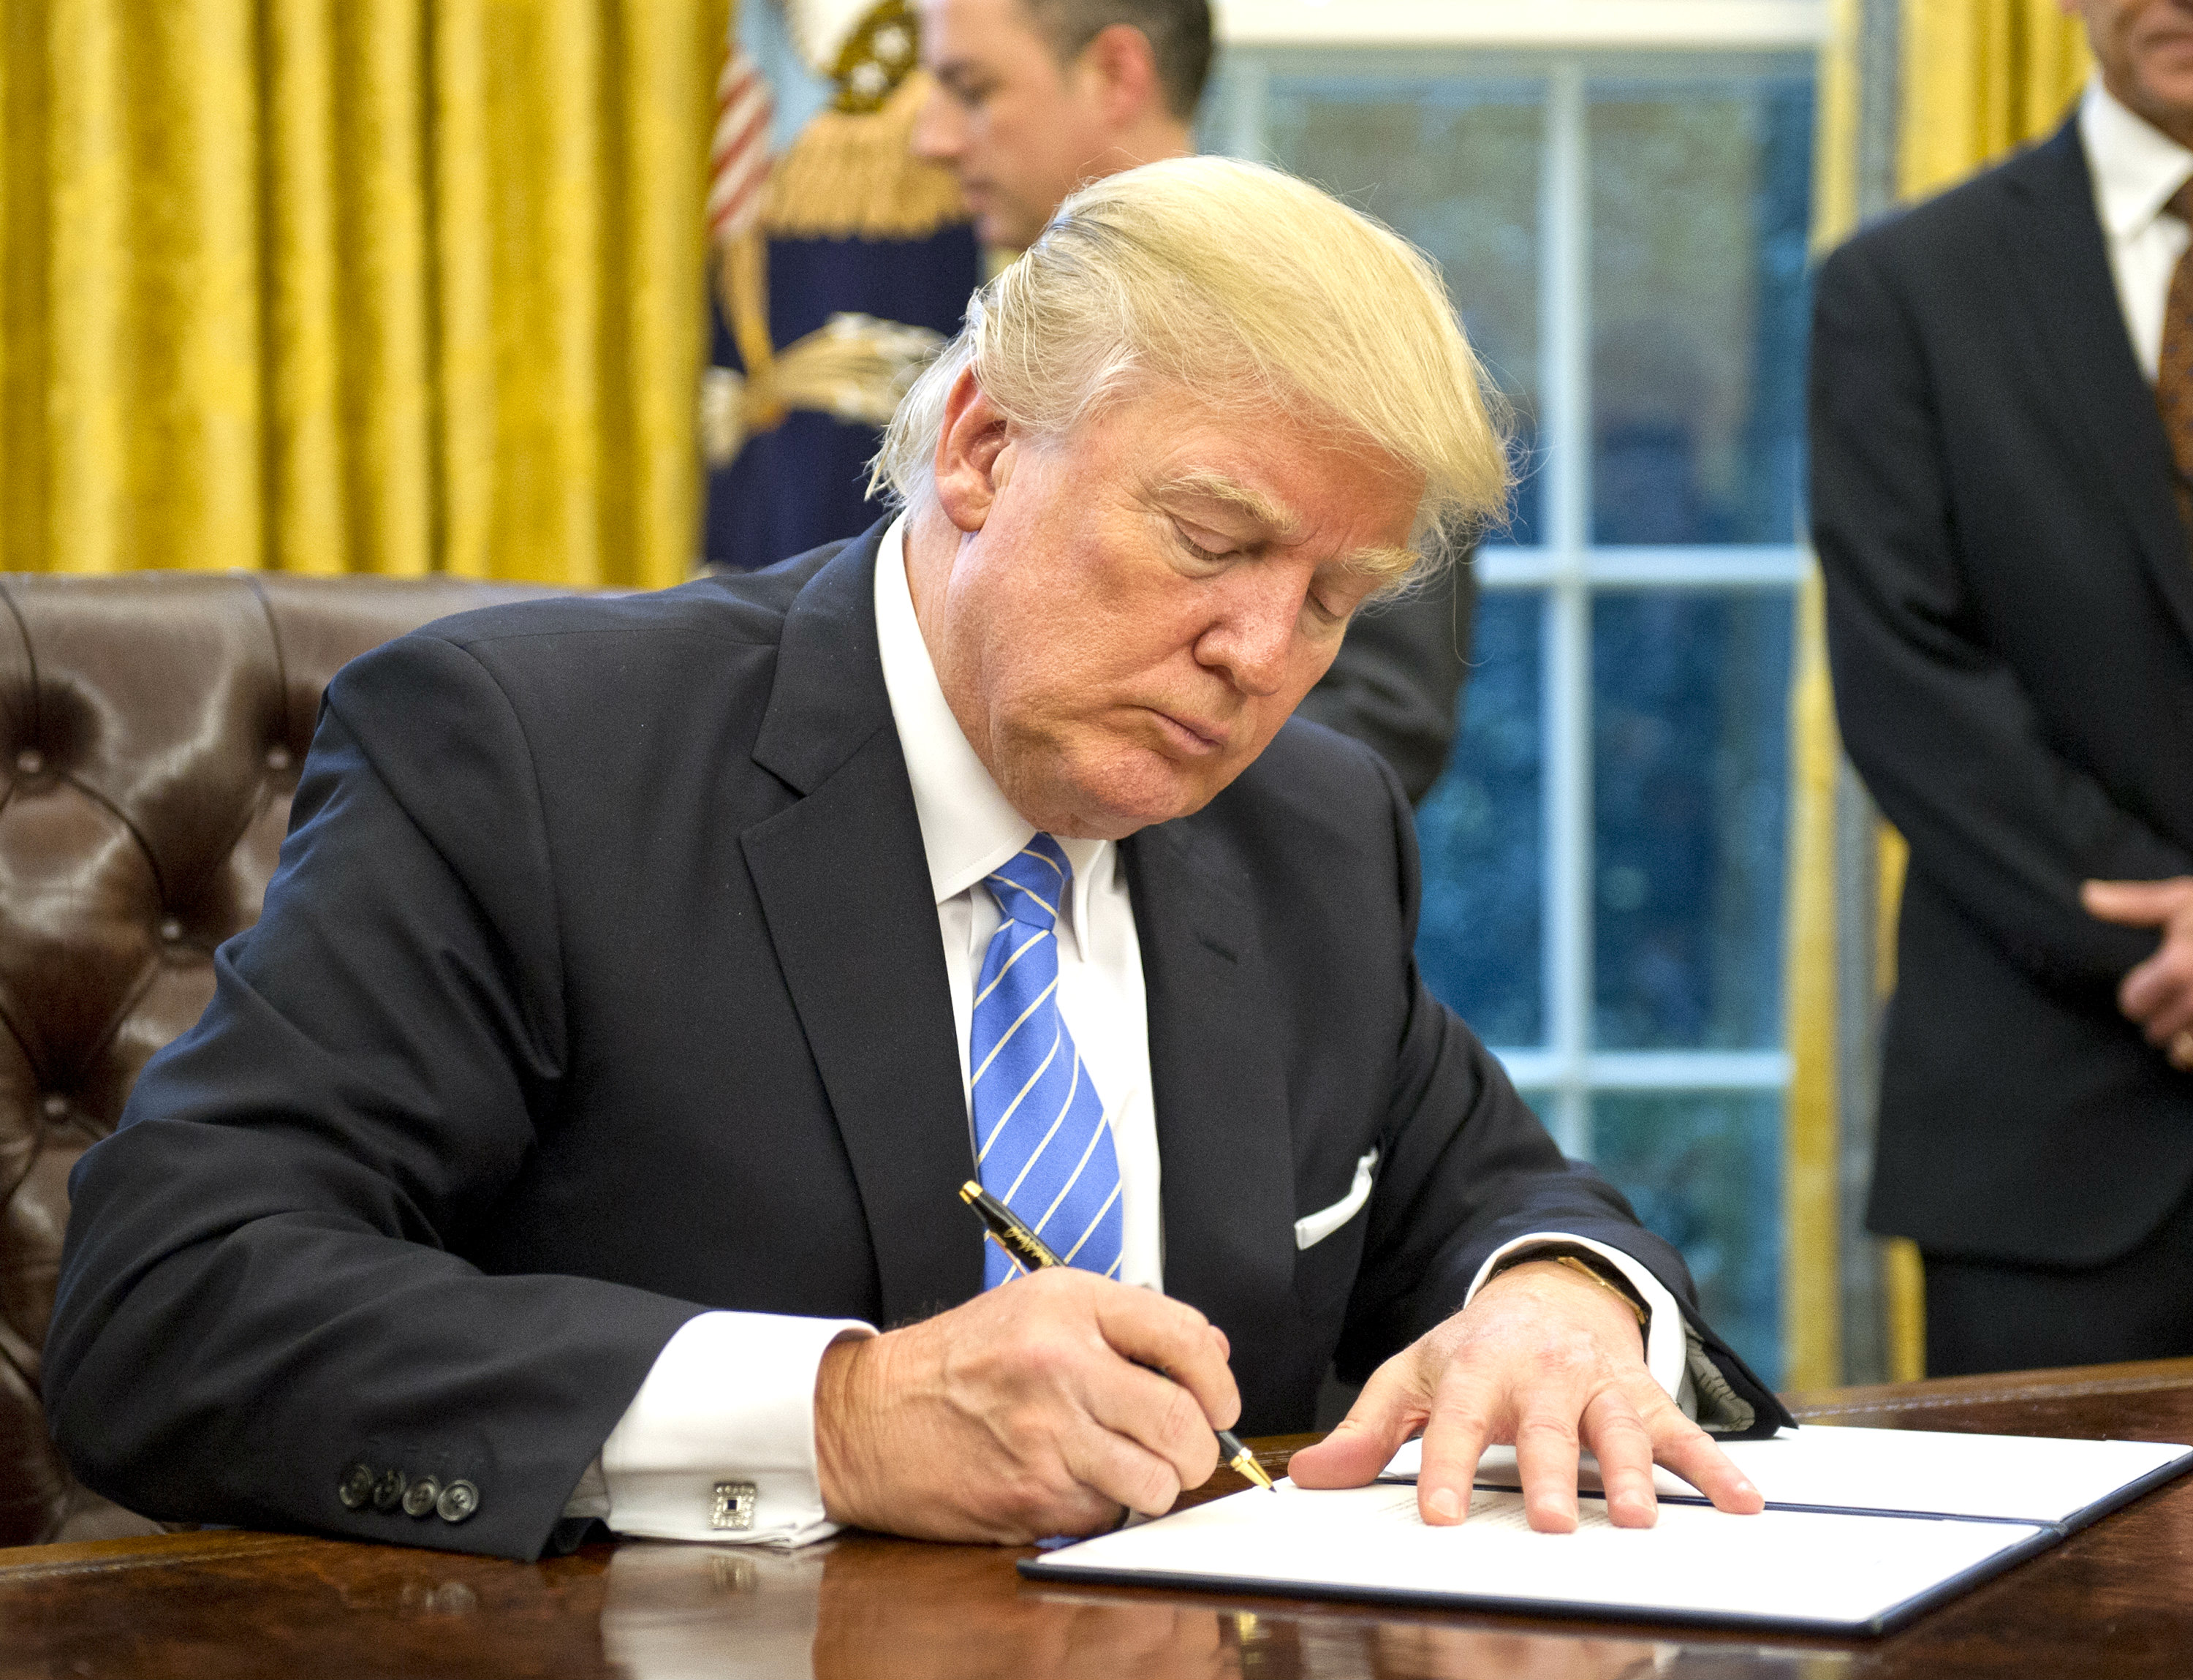 President Donald Trump signs the last of three Executive Orders in the Oval Office of the White House in Washington, DC, on Jan. 23, 2017. (Ron Sachs - Pool/Getty Images)